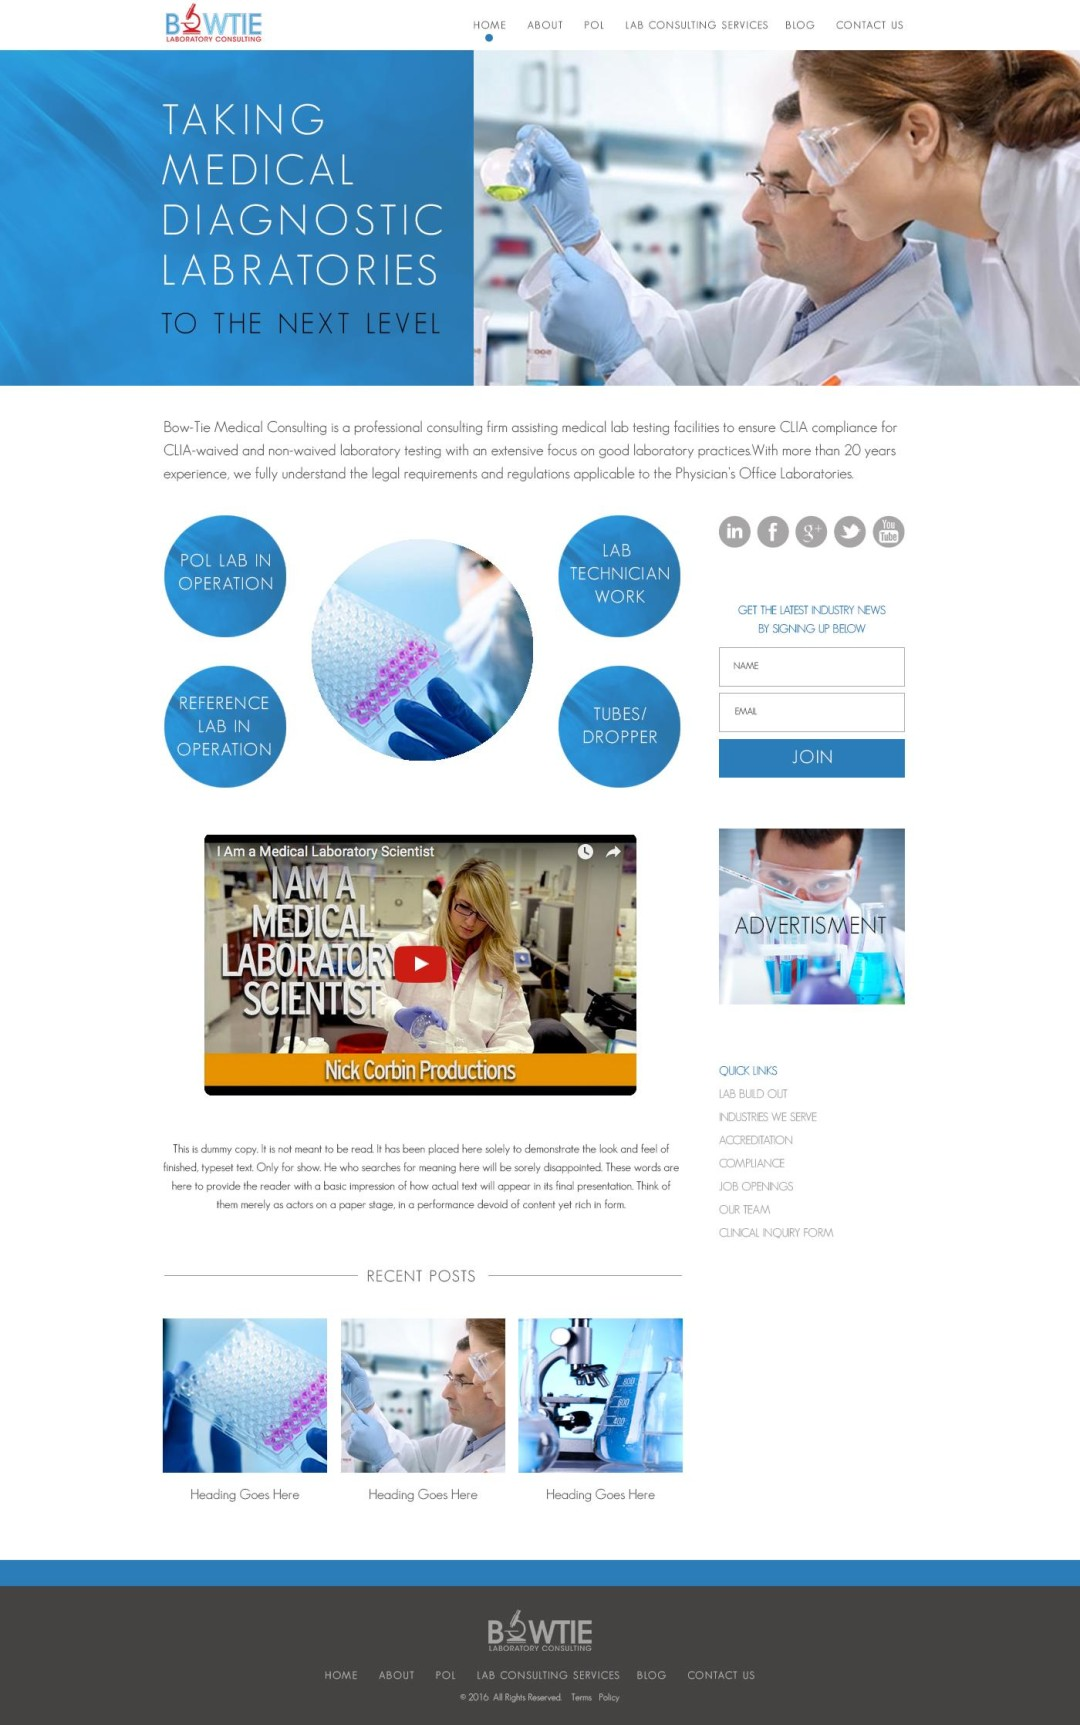 Custom Designed Wordpress Websites for Bowtie Medical Consulting